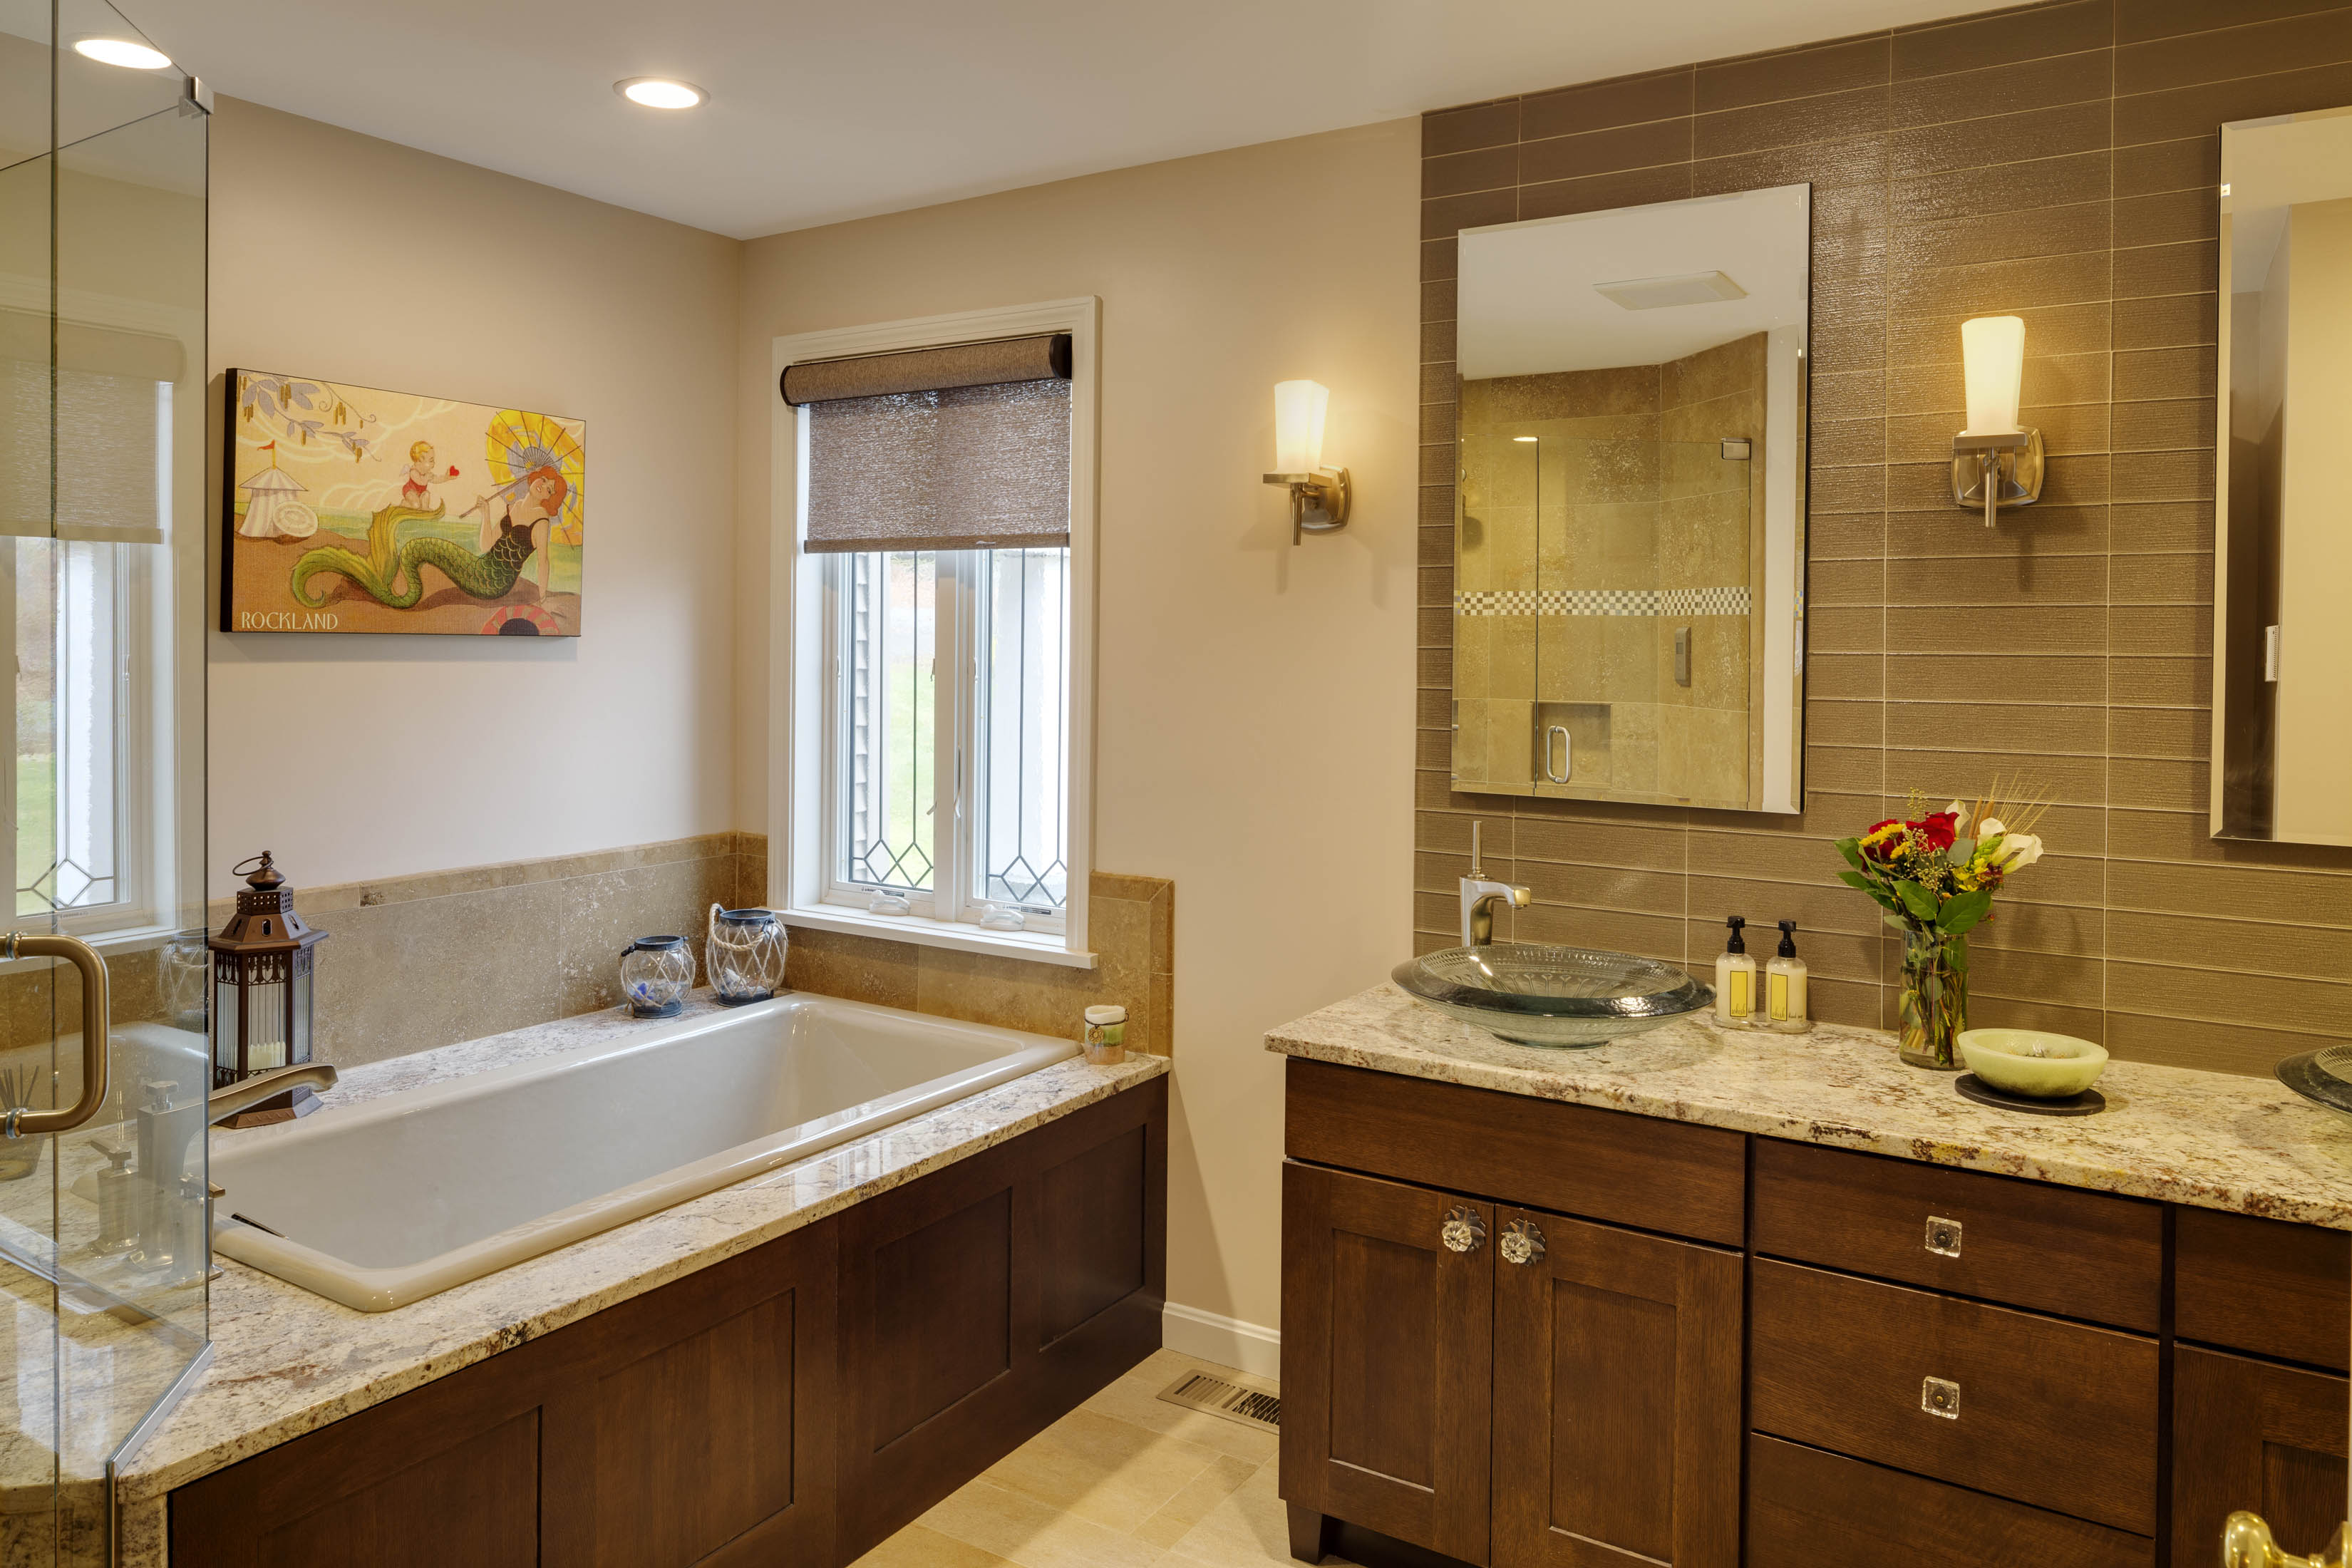 Bathroom showrooms shrewsbury - 5 Professional Tips For Remodeling A Bathroom